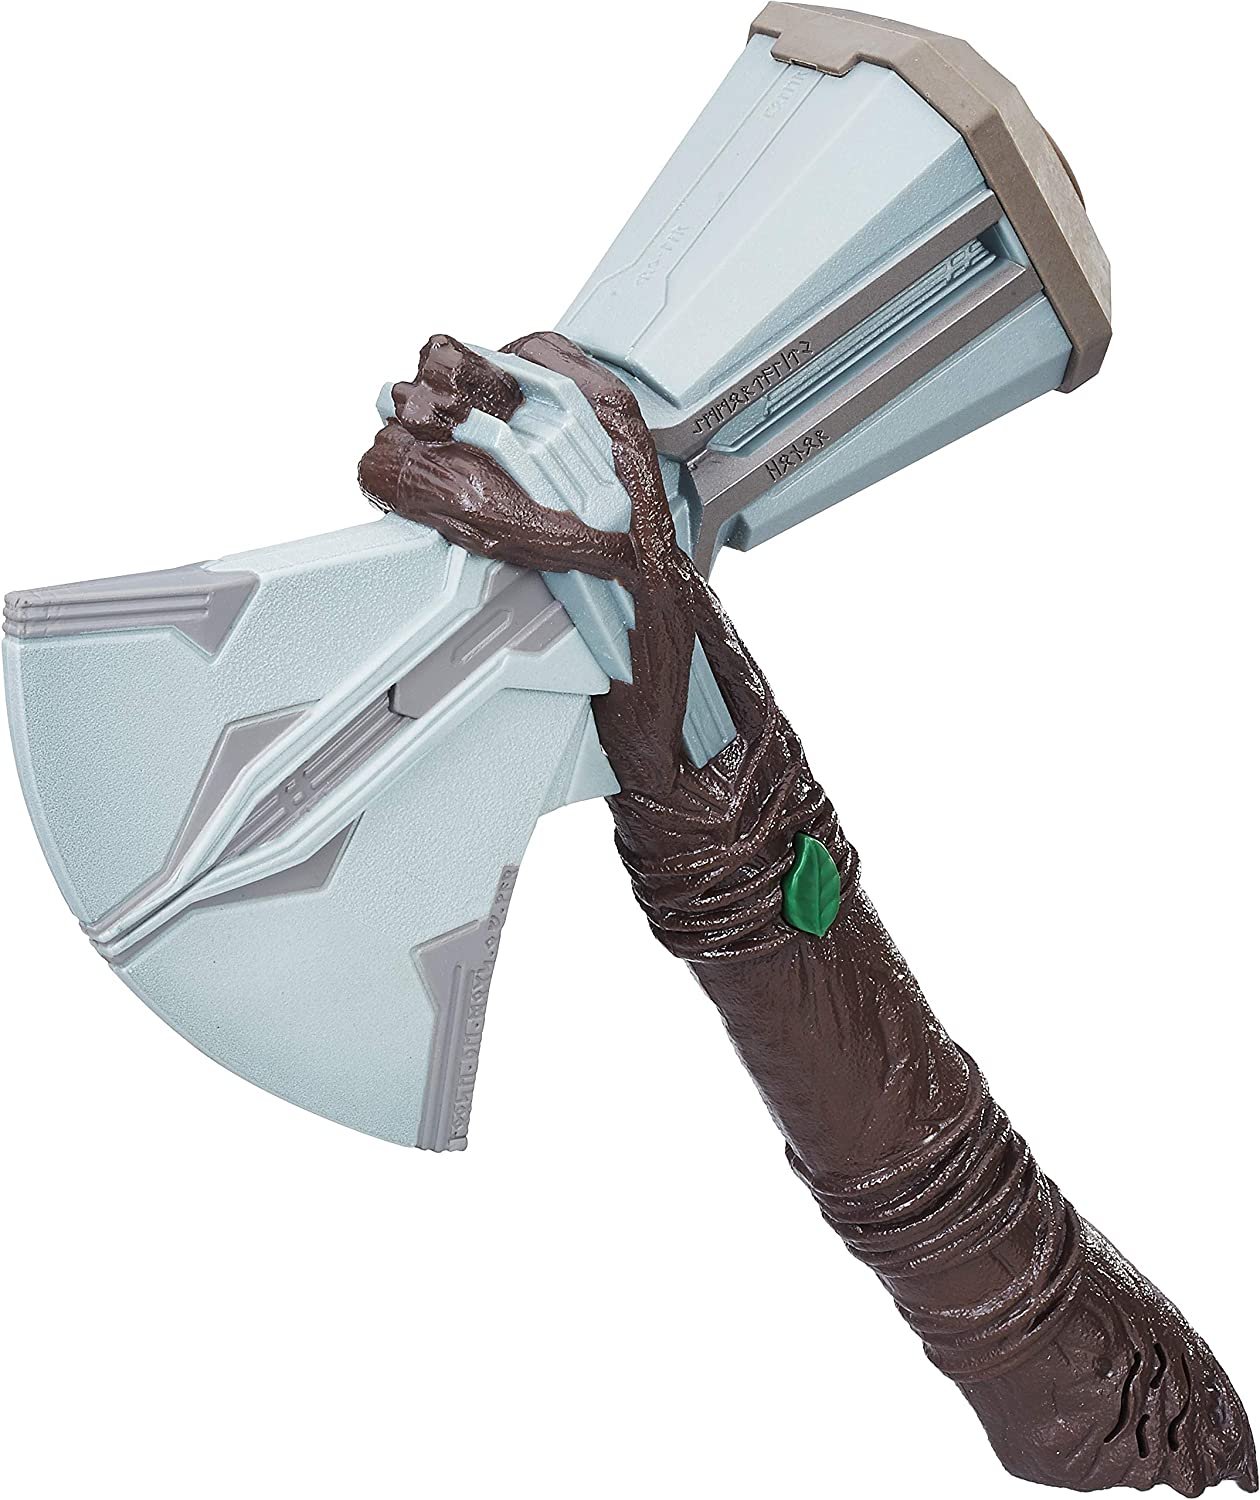 Marvel Avengers Infinity War Stormbreaker Electronic Axe Toy Brand New